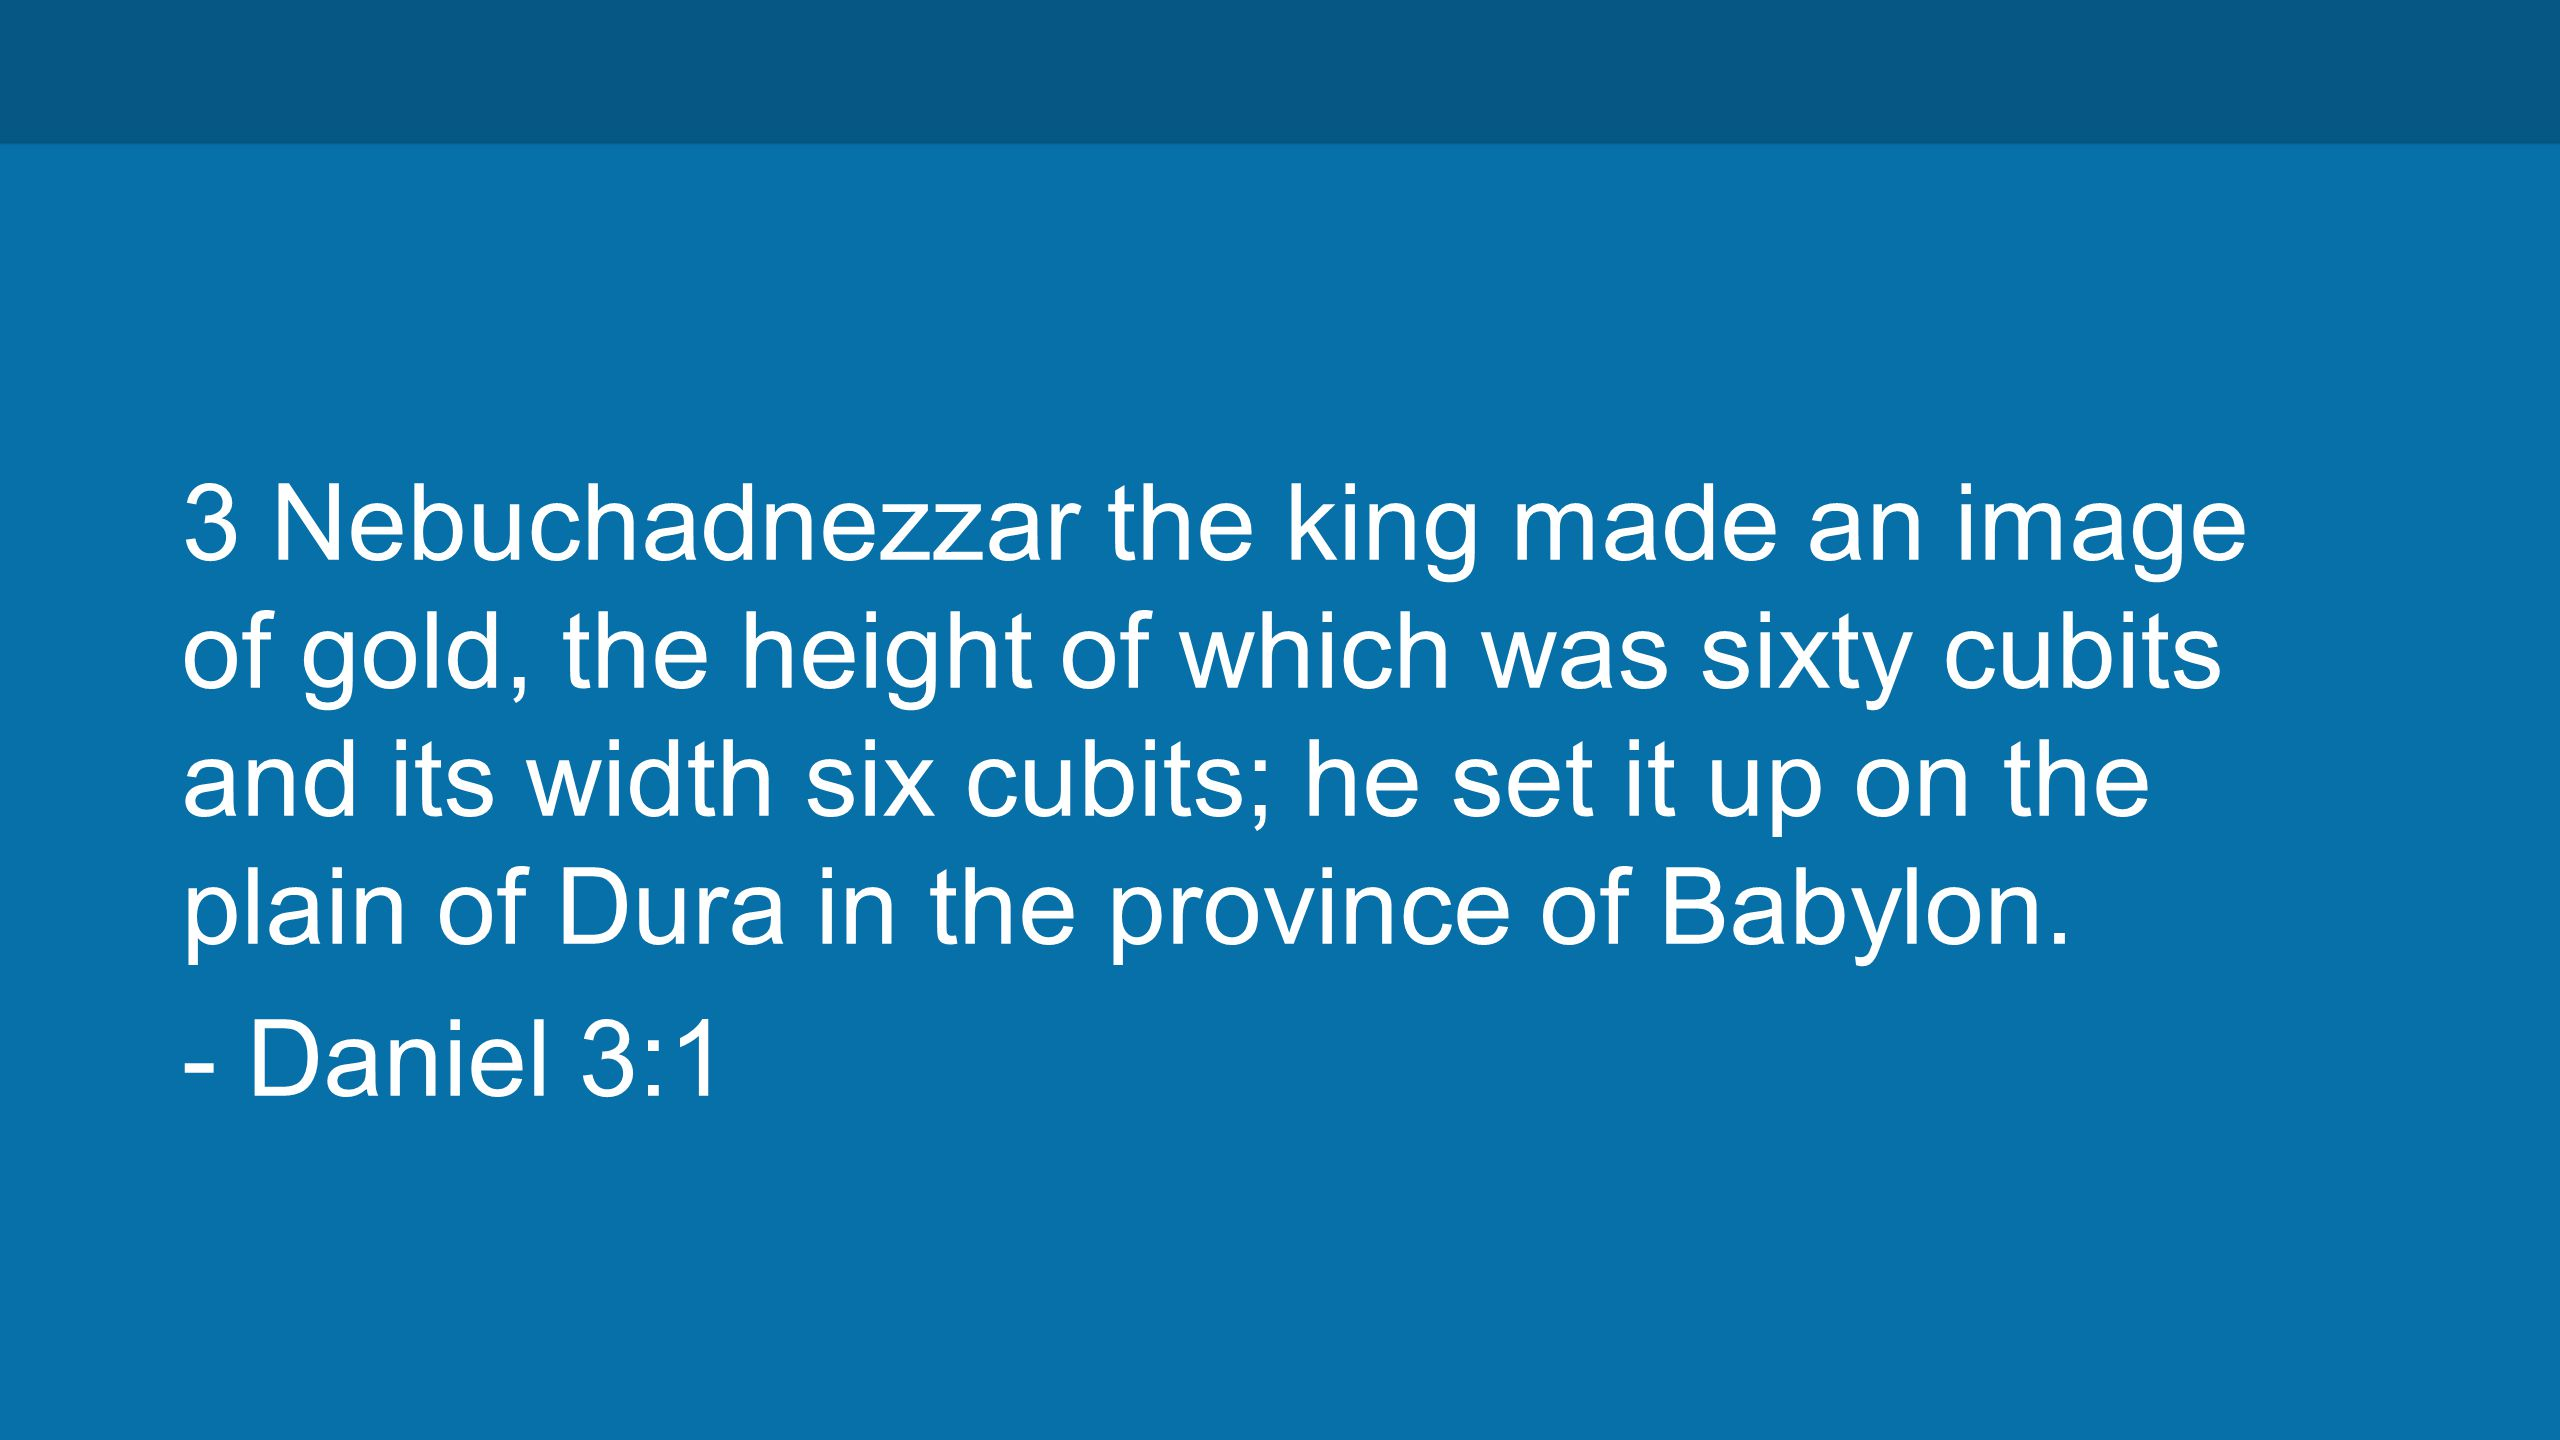 3 Nebuchadnezzar the king made an image of gold, the height of which was sixty cubits and its width six cubits; he set it up on the plain of Dura in the province of Babylon.